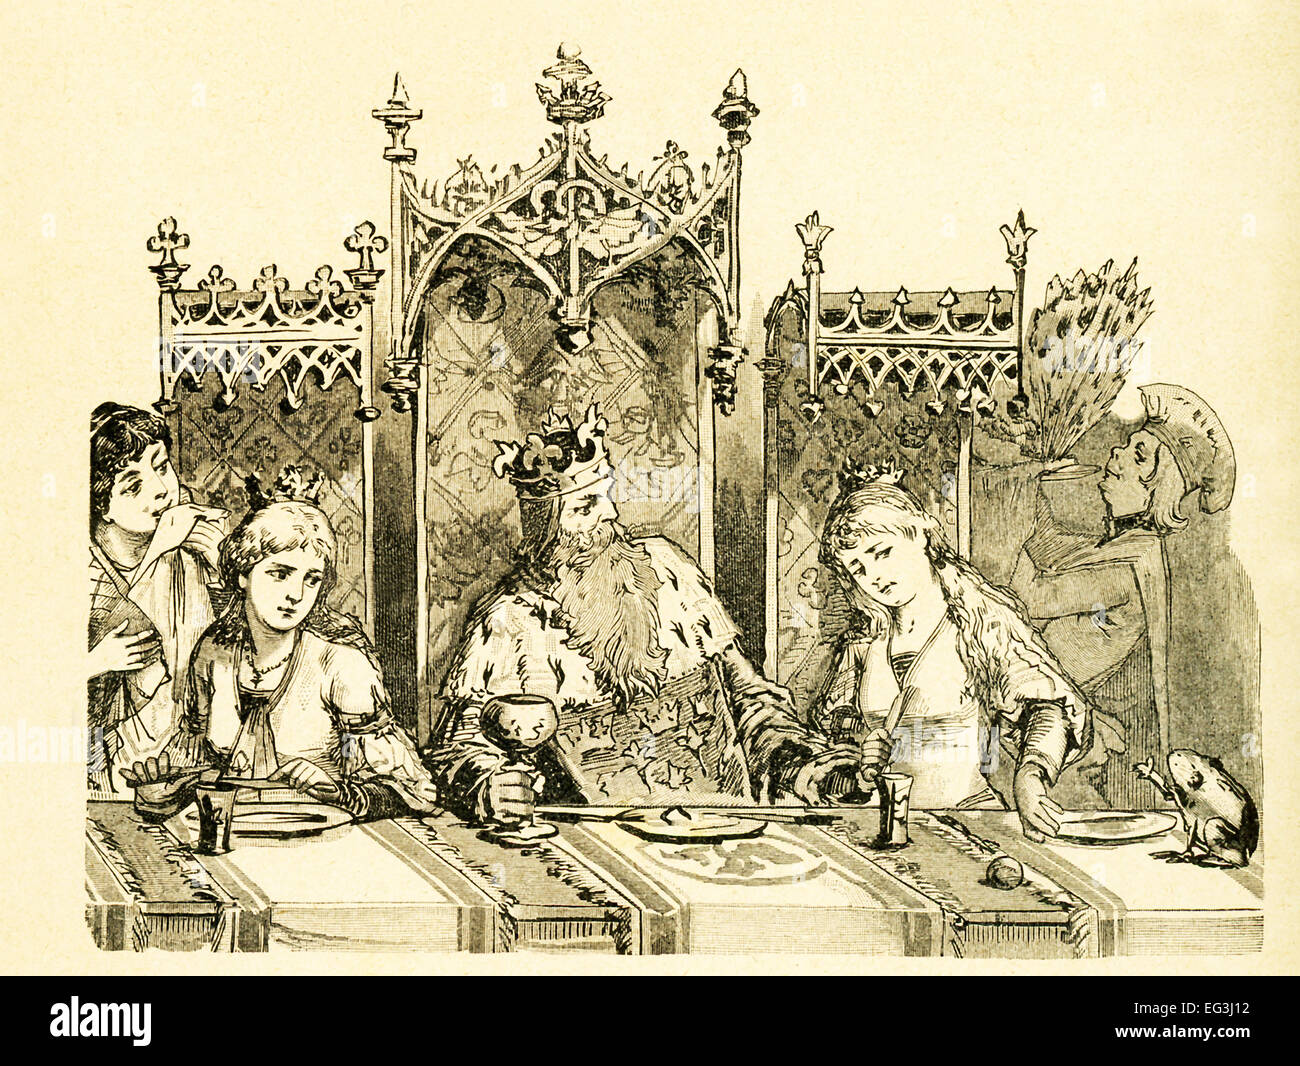 the brothers grimm essay Anne sexton's poetic debunking of cinderella is a dark comic version of the popular fairy tale in it, she combines the brothers' grimm tale with stories from modern society.